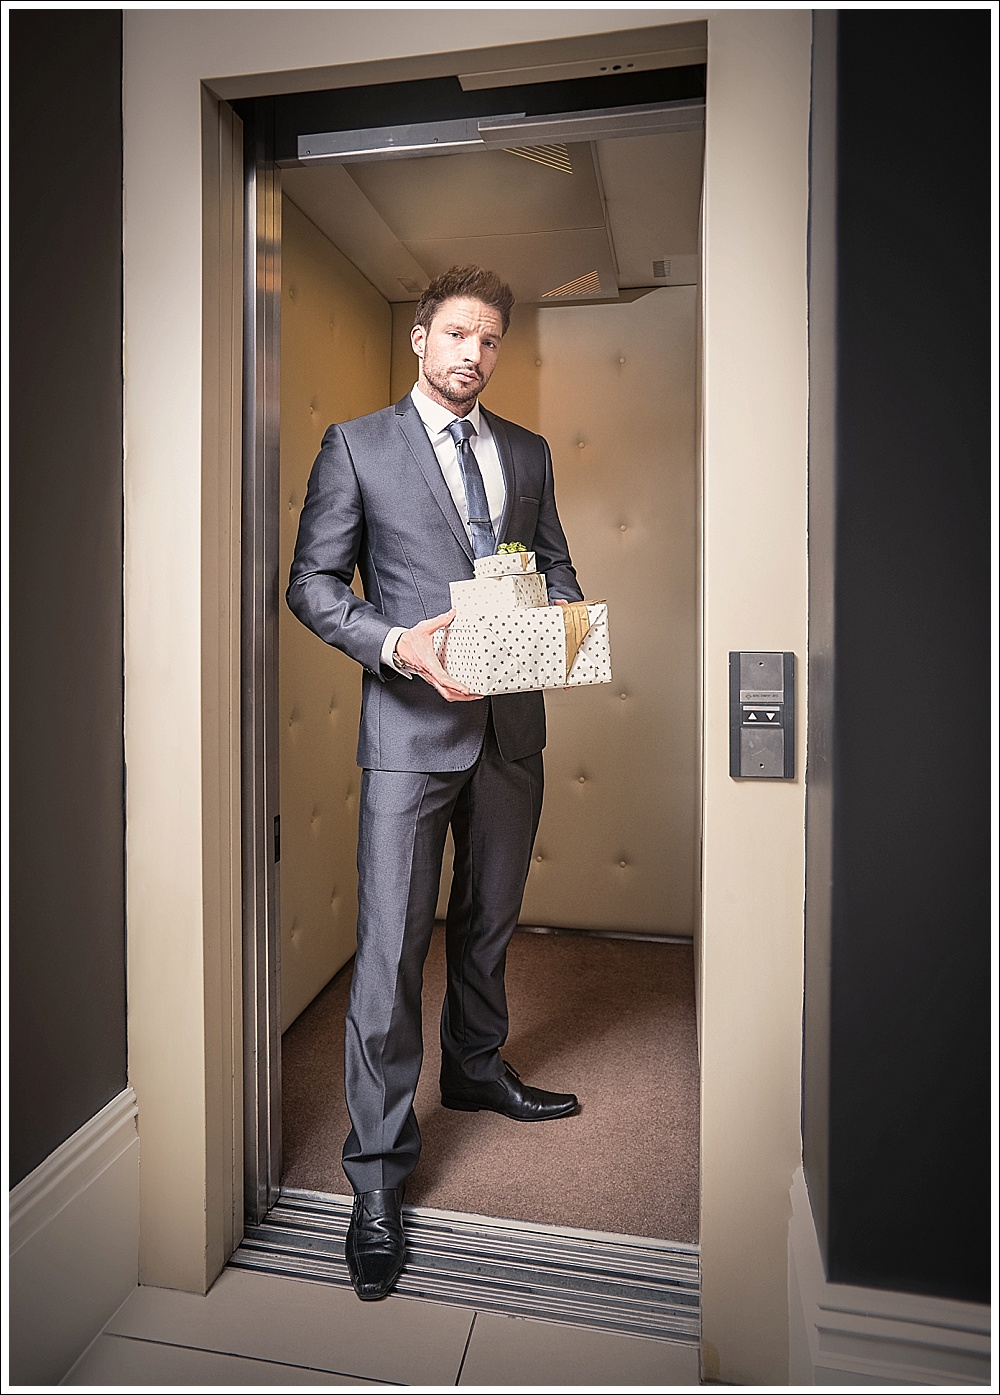 Male model in elevator with gifts